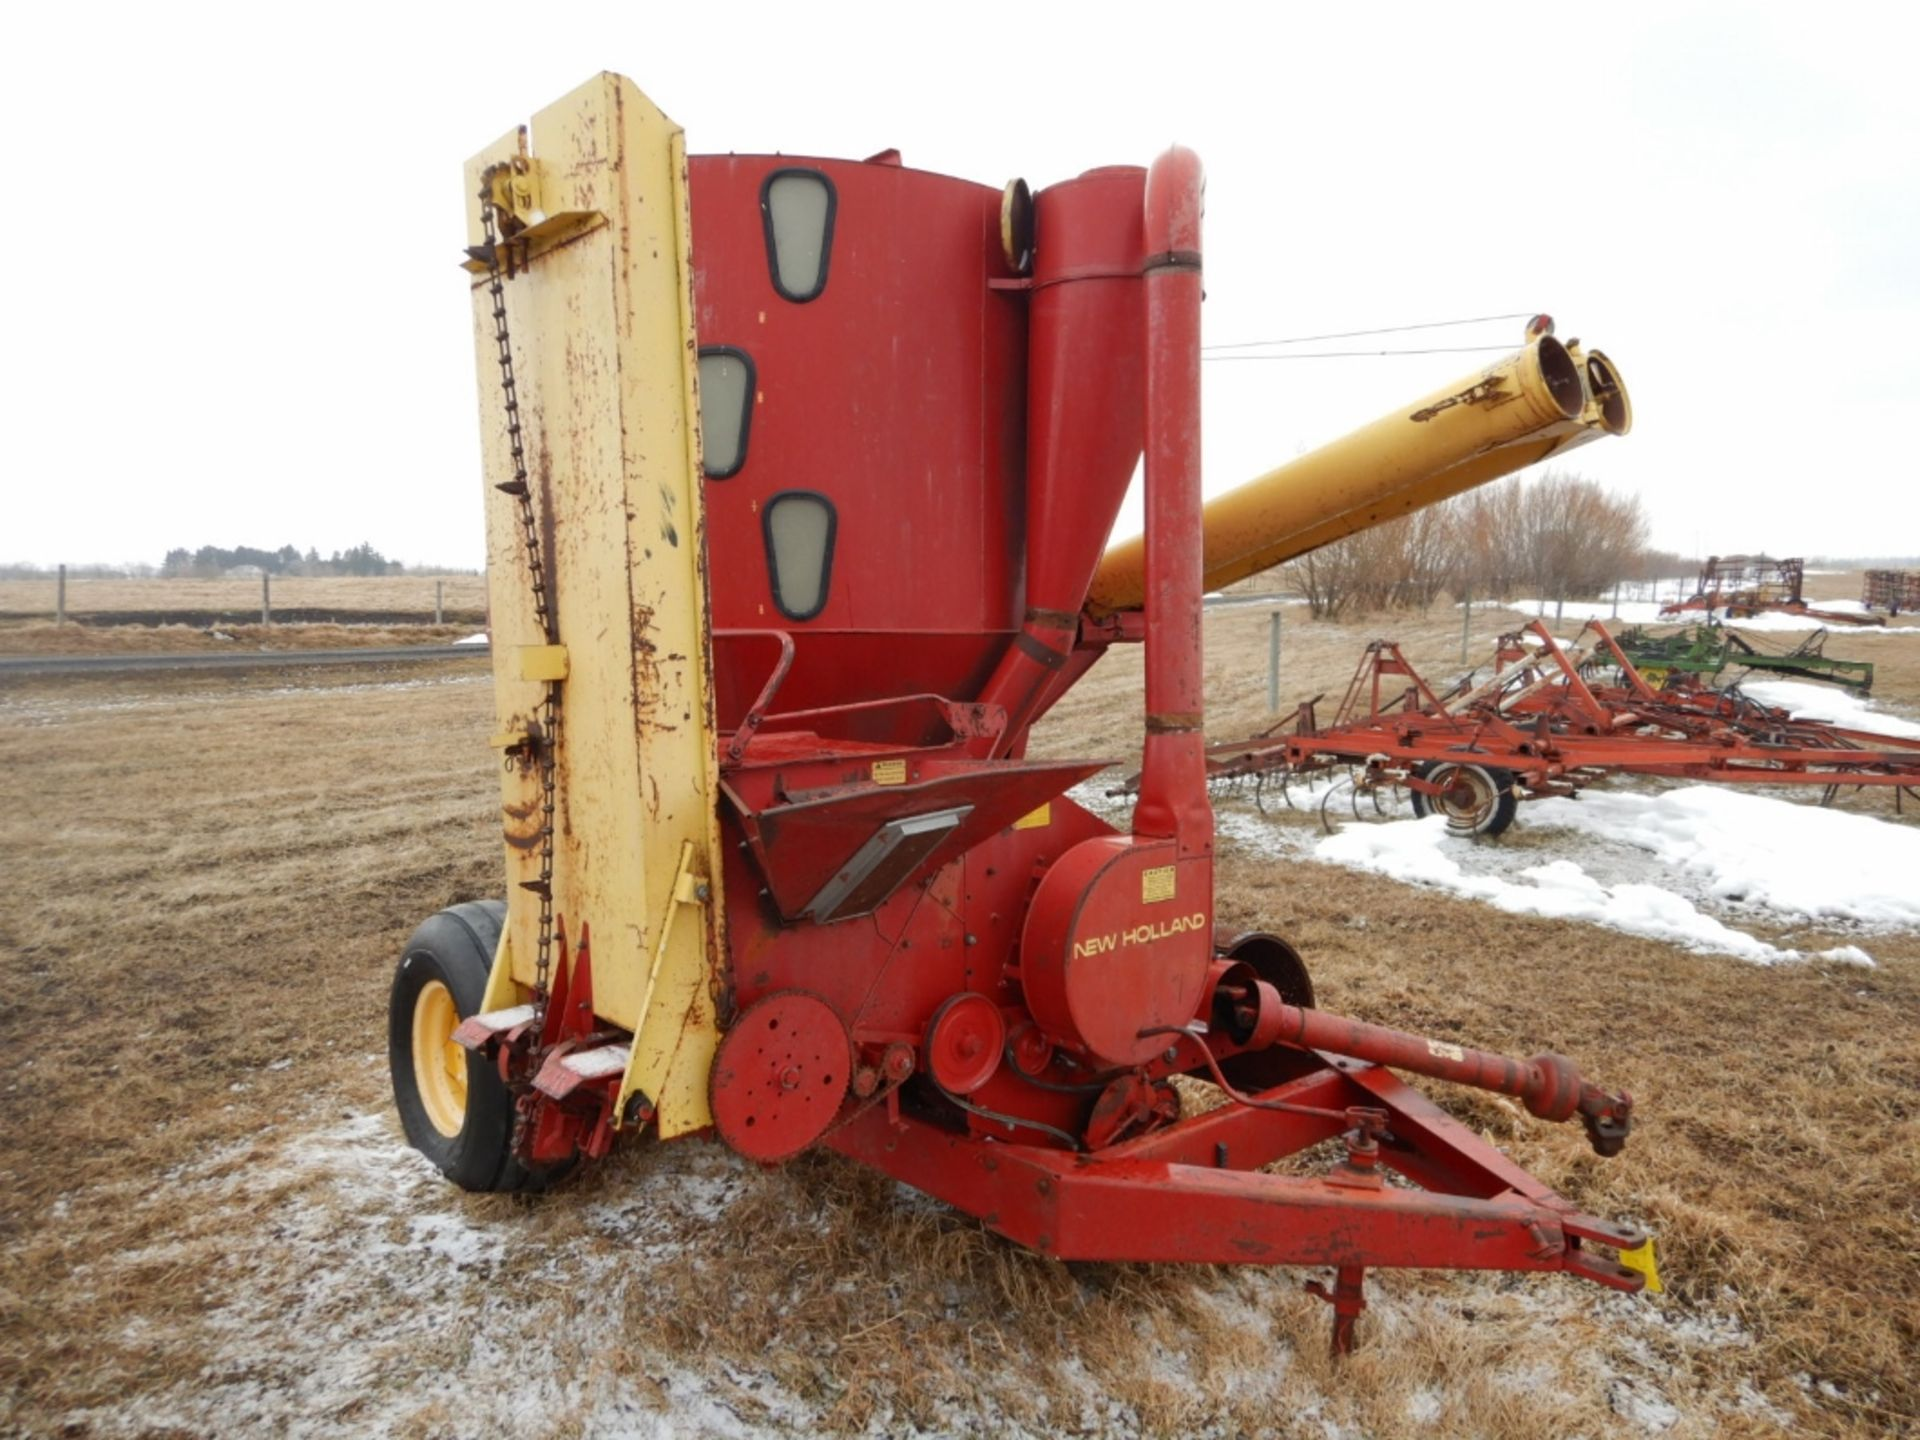 NH 357 GRINDER MIXER MILL W/SQUARE BALE FEEDER ATTACH., EXTRA SCREENS - Image 2 of 7